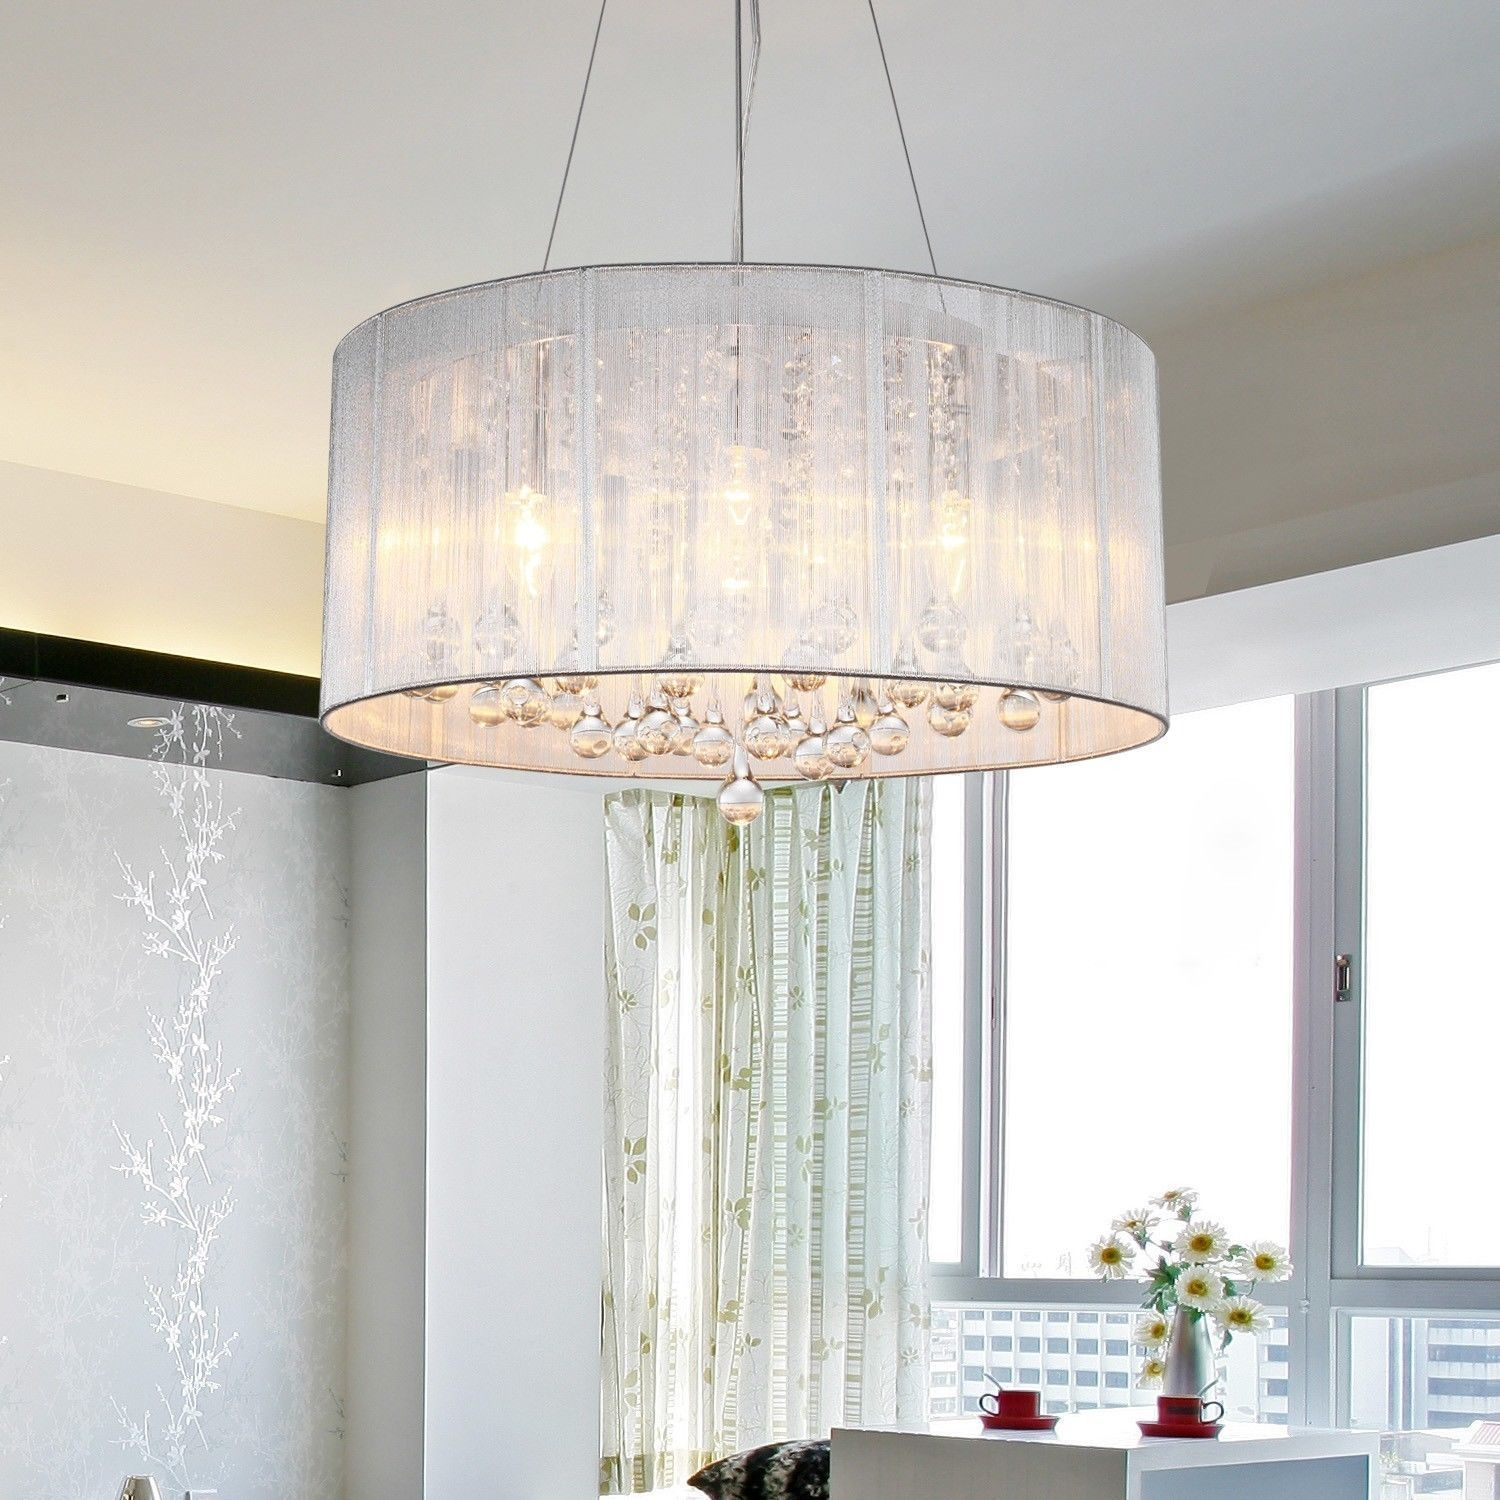 Very Awesome Lamp Shade Chandelier Best Home Decor Inspirations Pertaining To Chandelier Lamp Shades (Image 24 of 25)